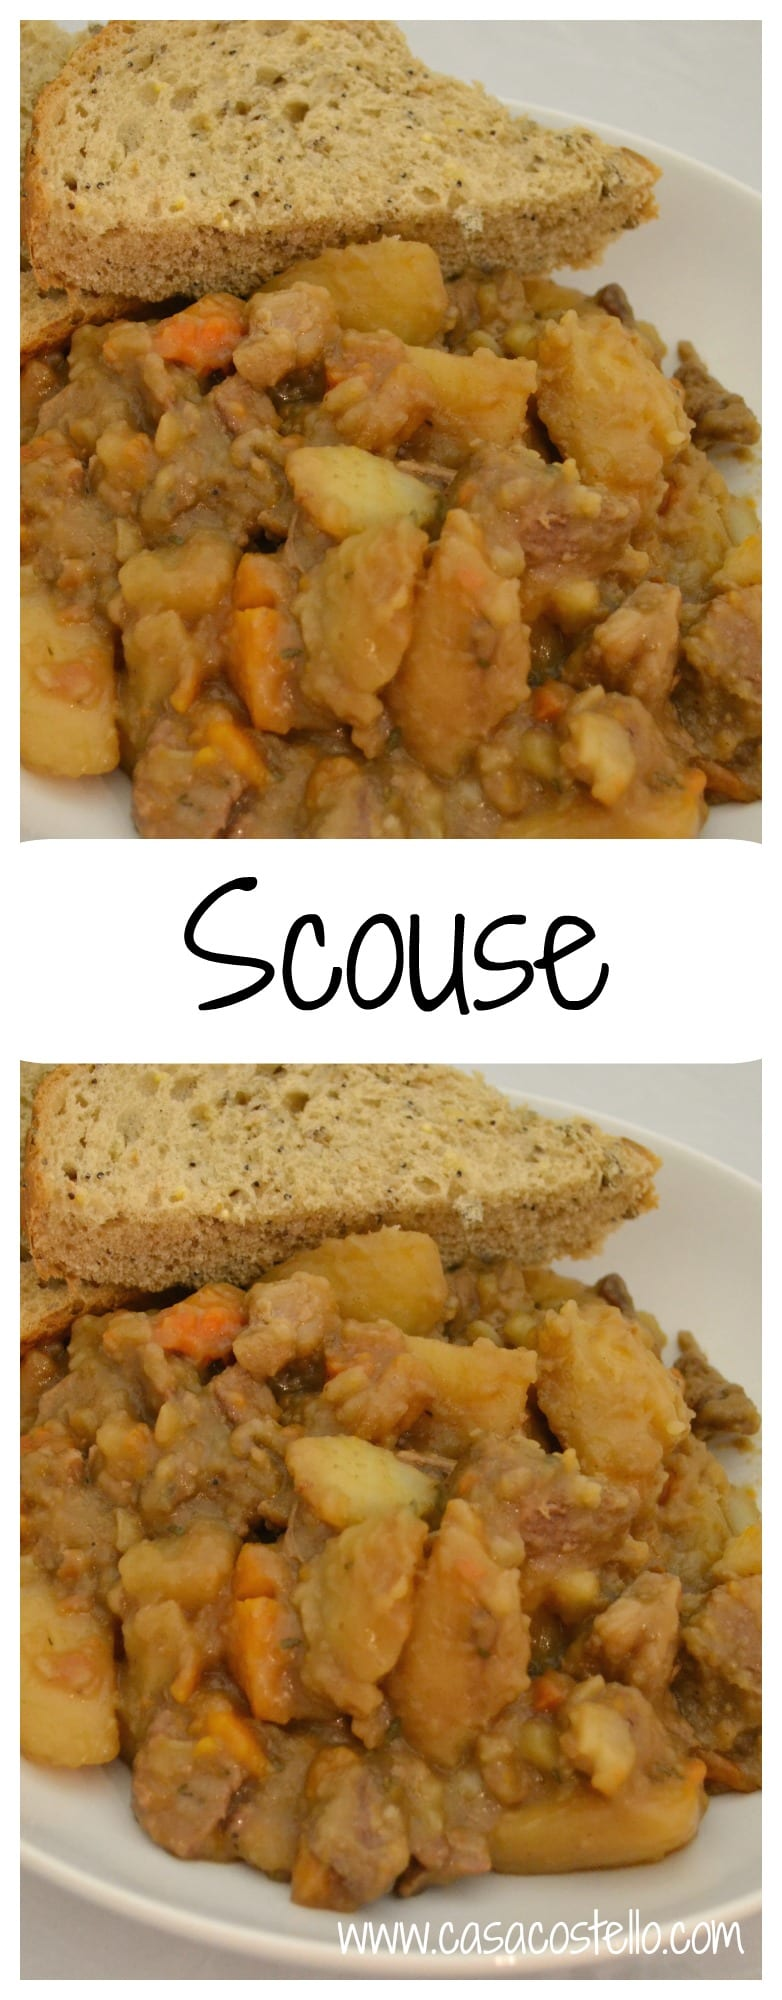 Scouse Recipe